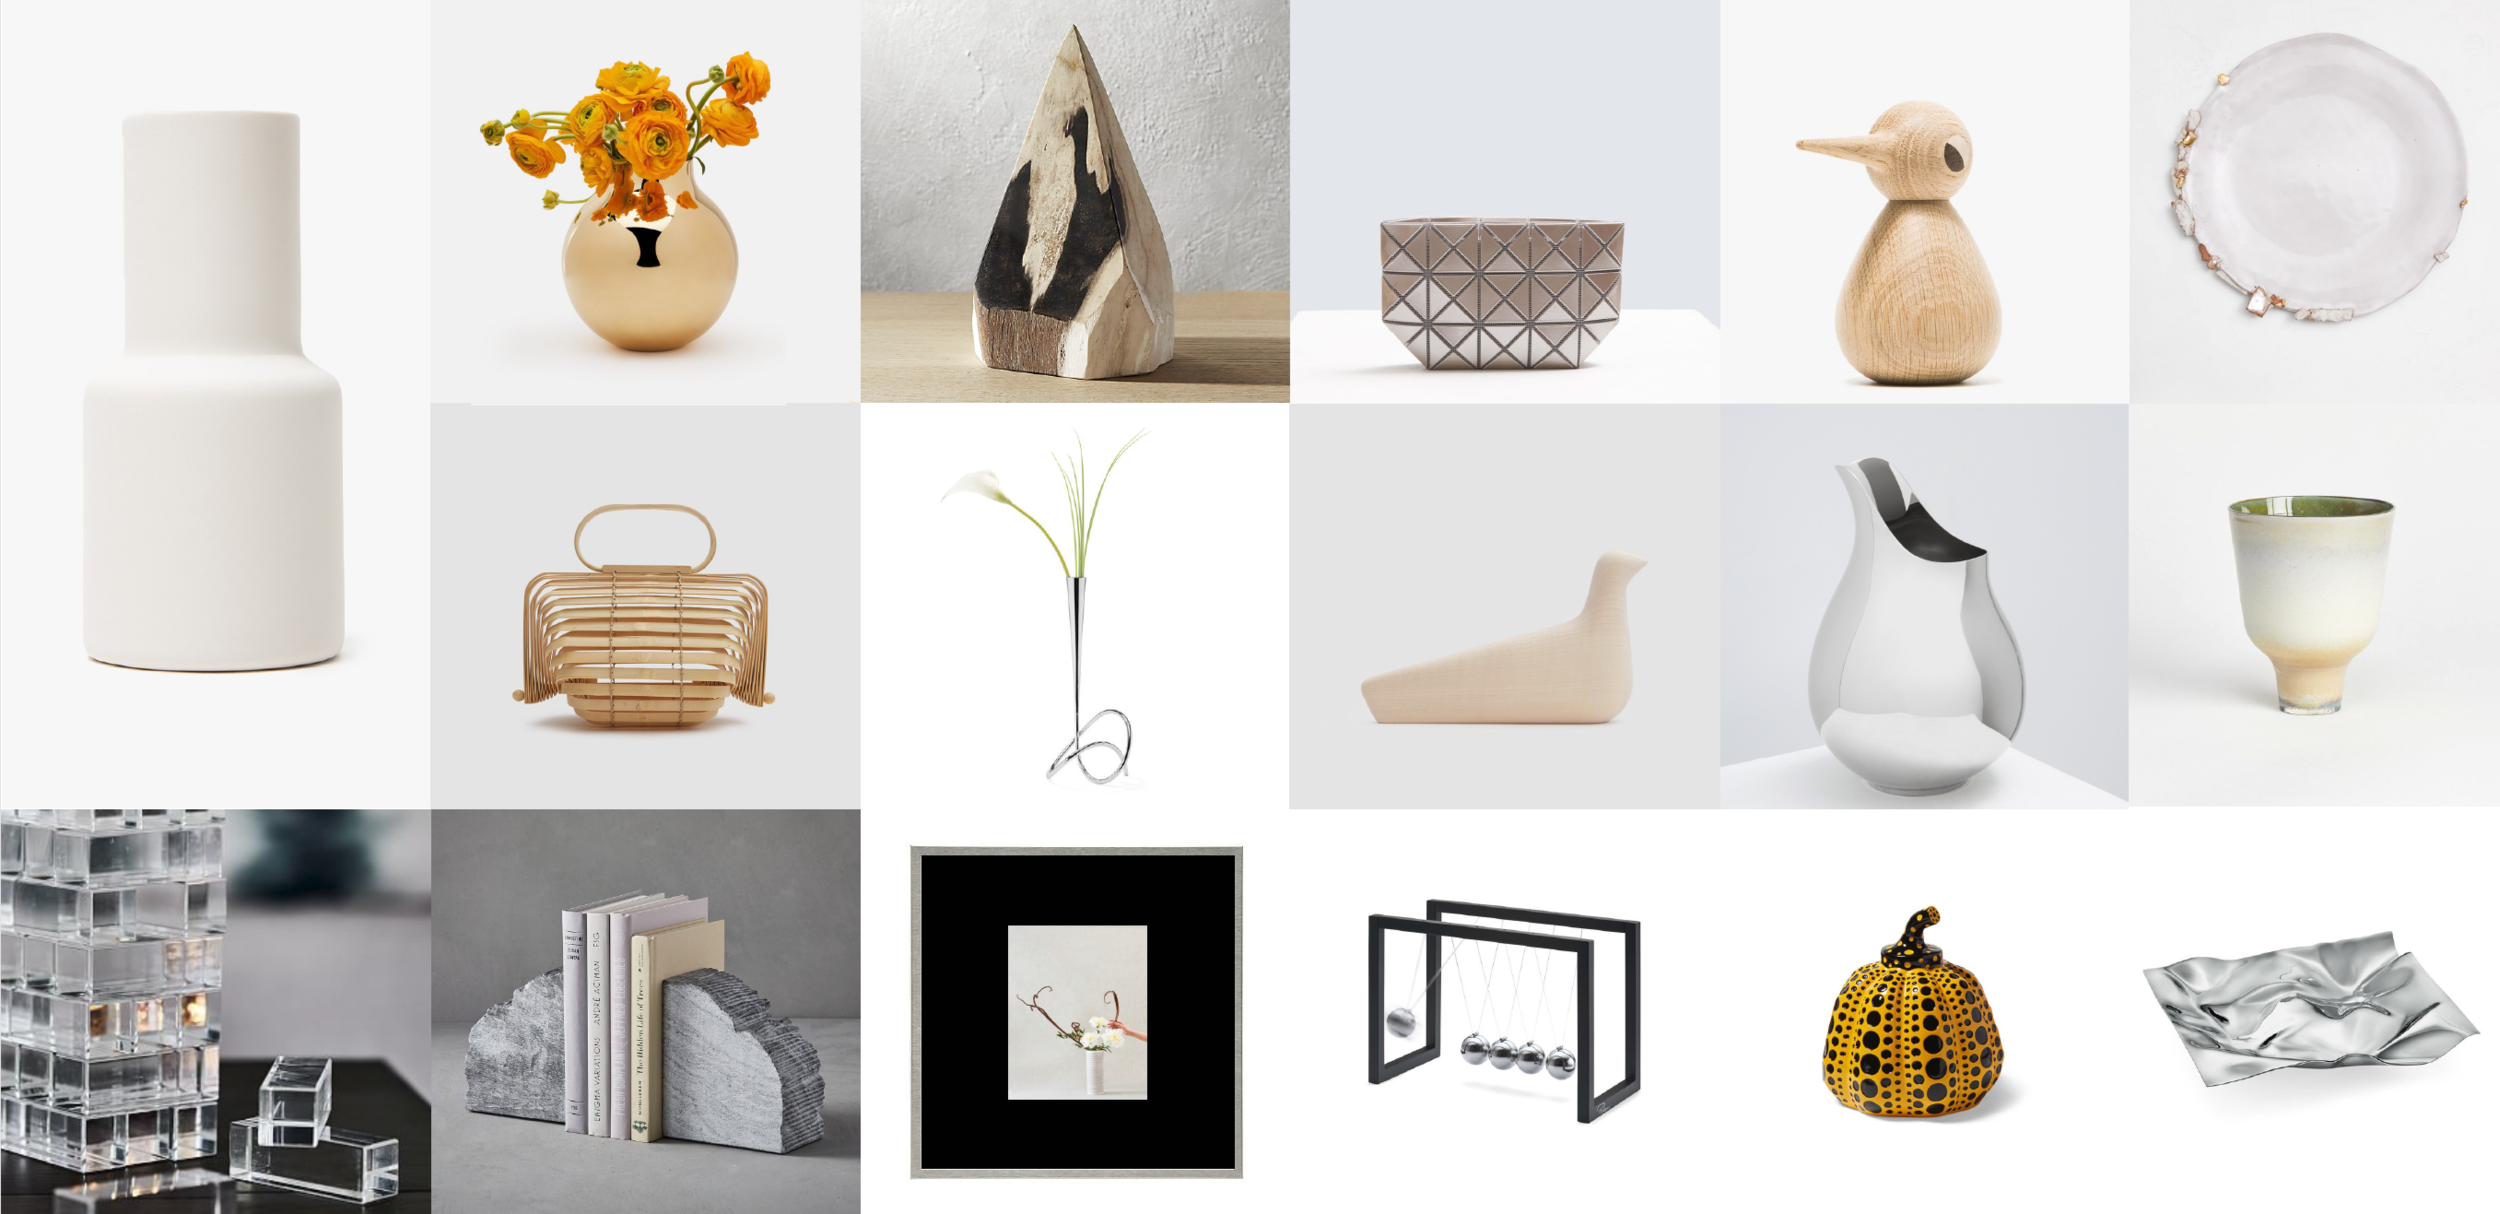 LOUNGE OBJECTS